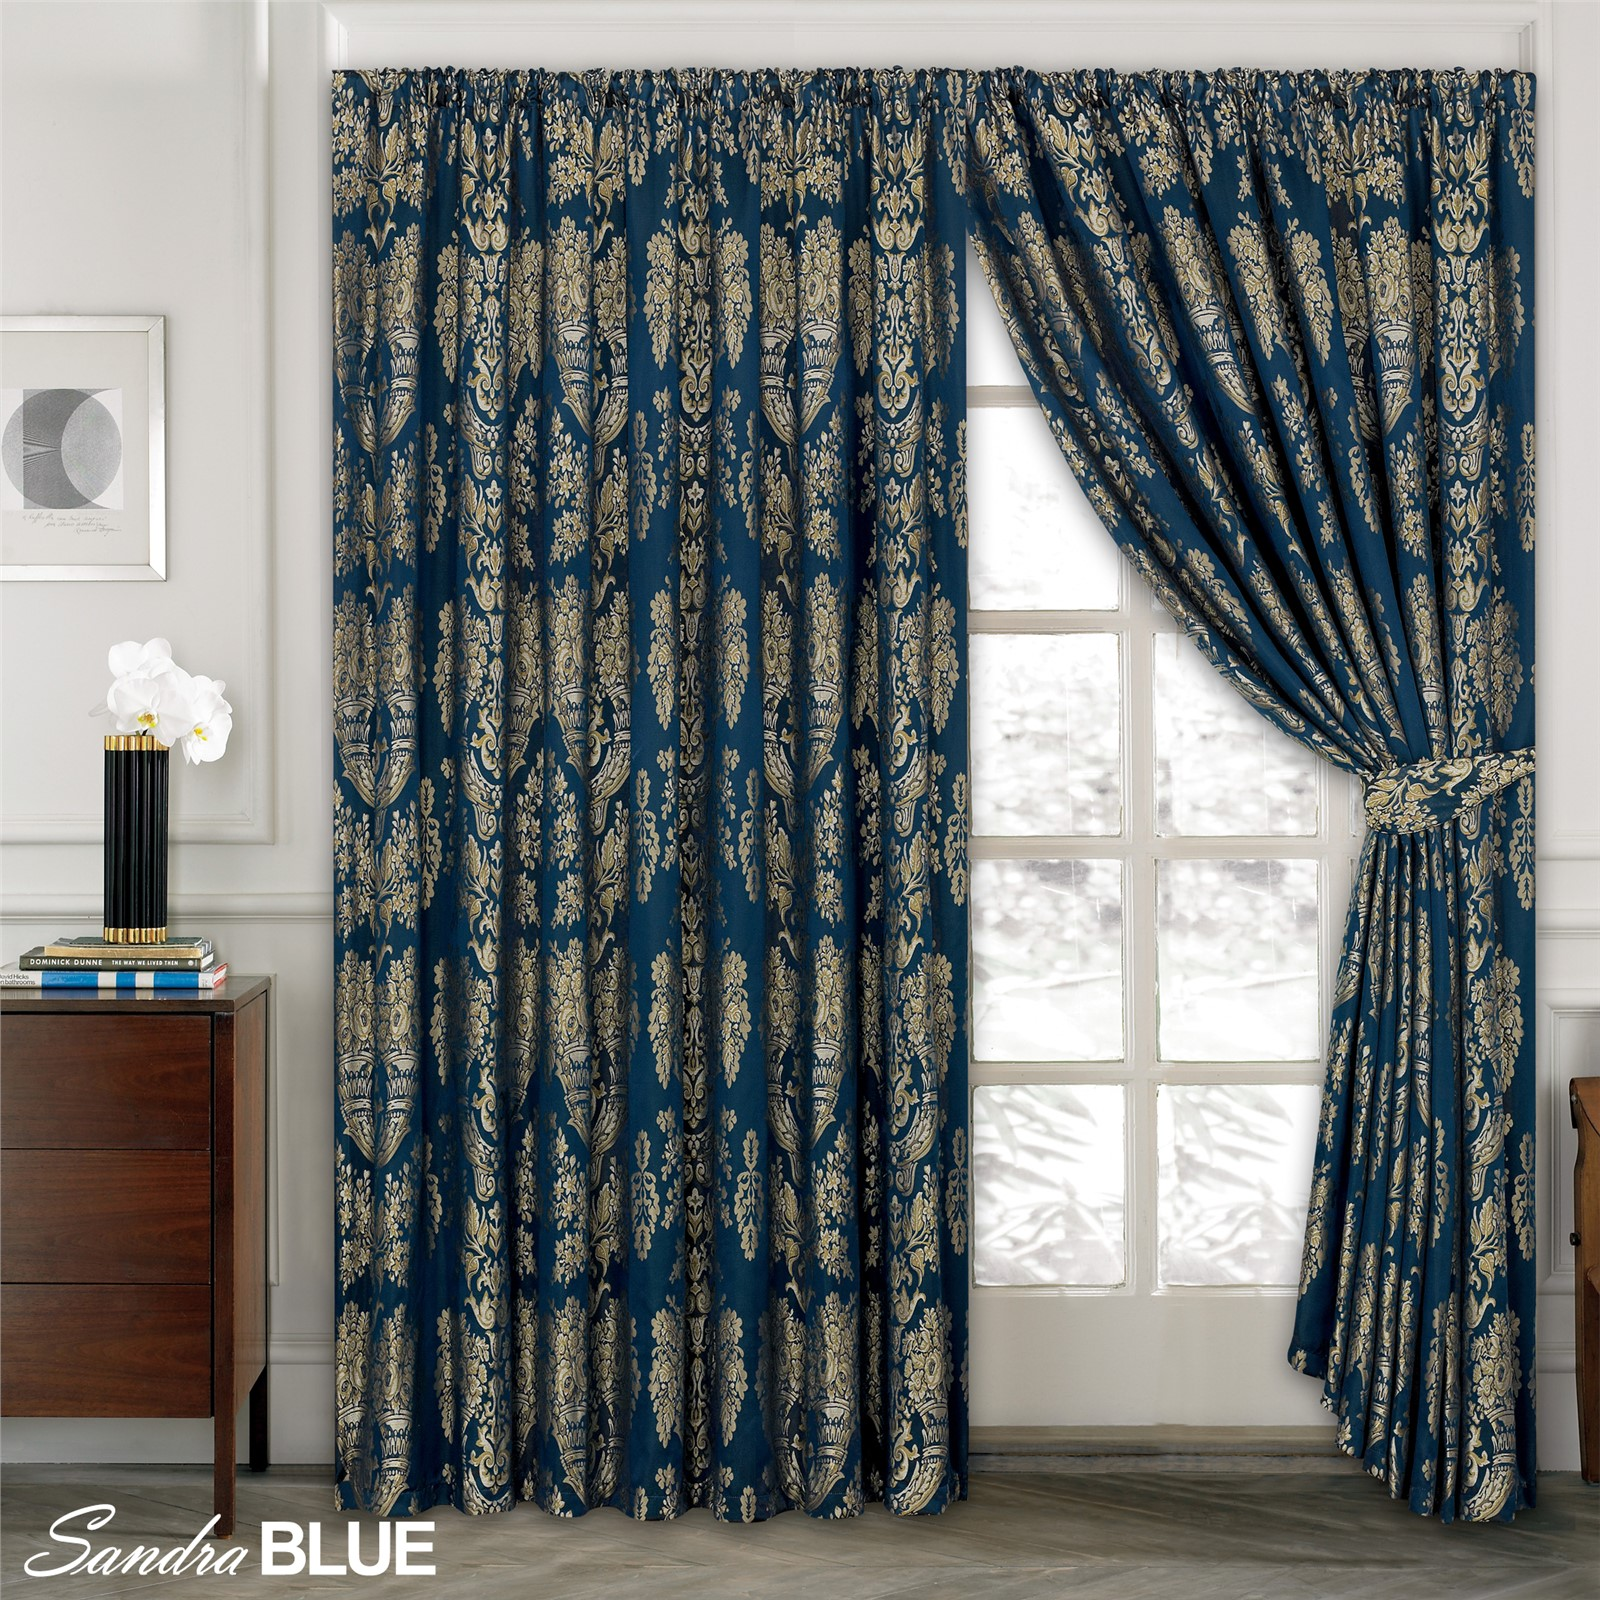 Luxury Jacquard Curtains Fully Lined Ready Made Tape Top